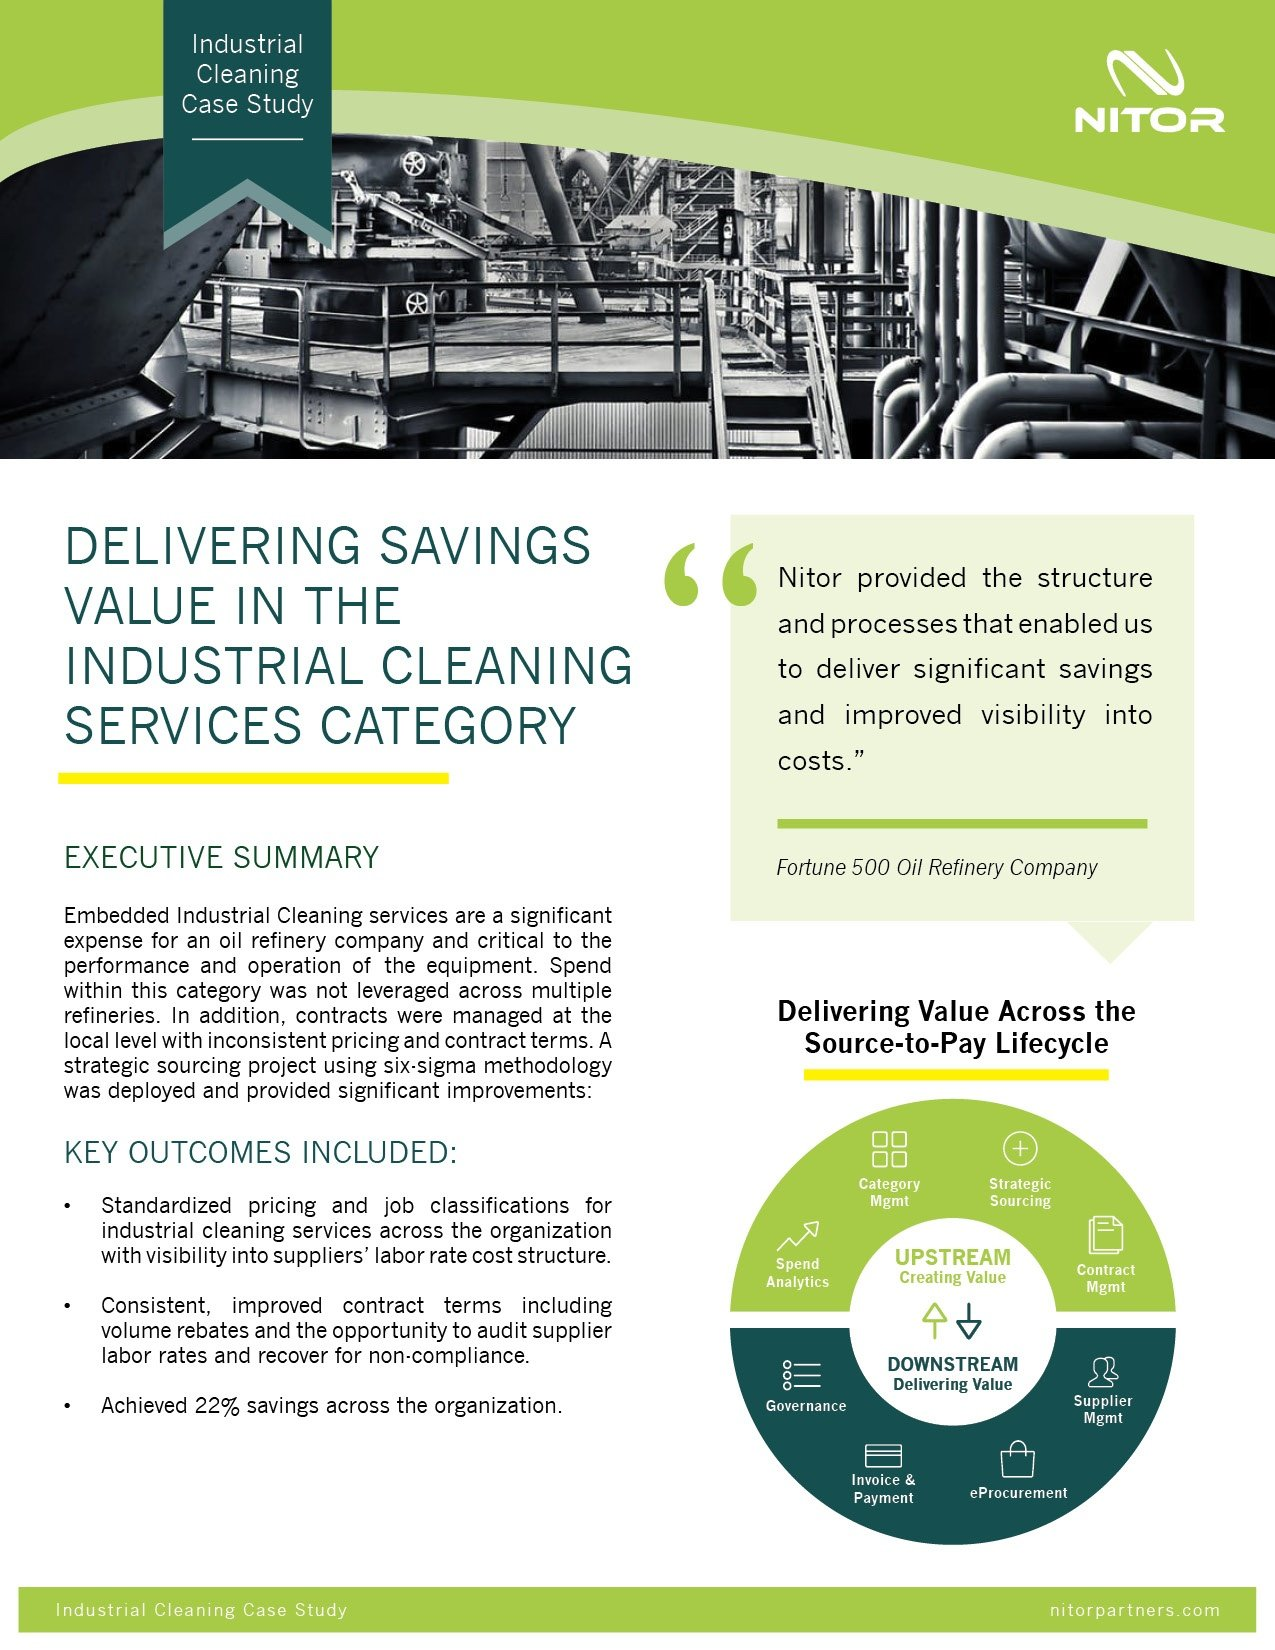 Nitor_CaseStudy_IndustrialCleaning.jpg